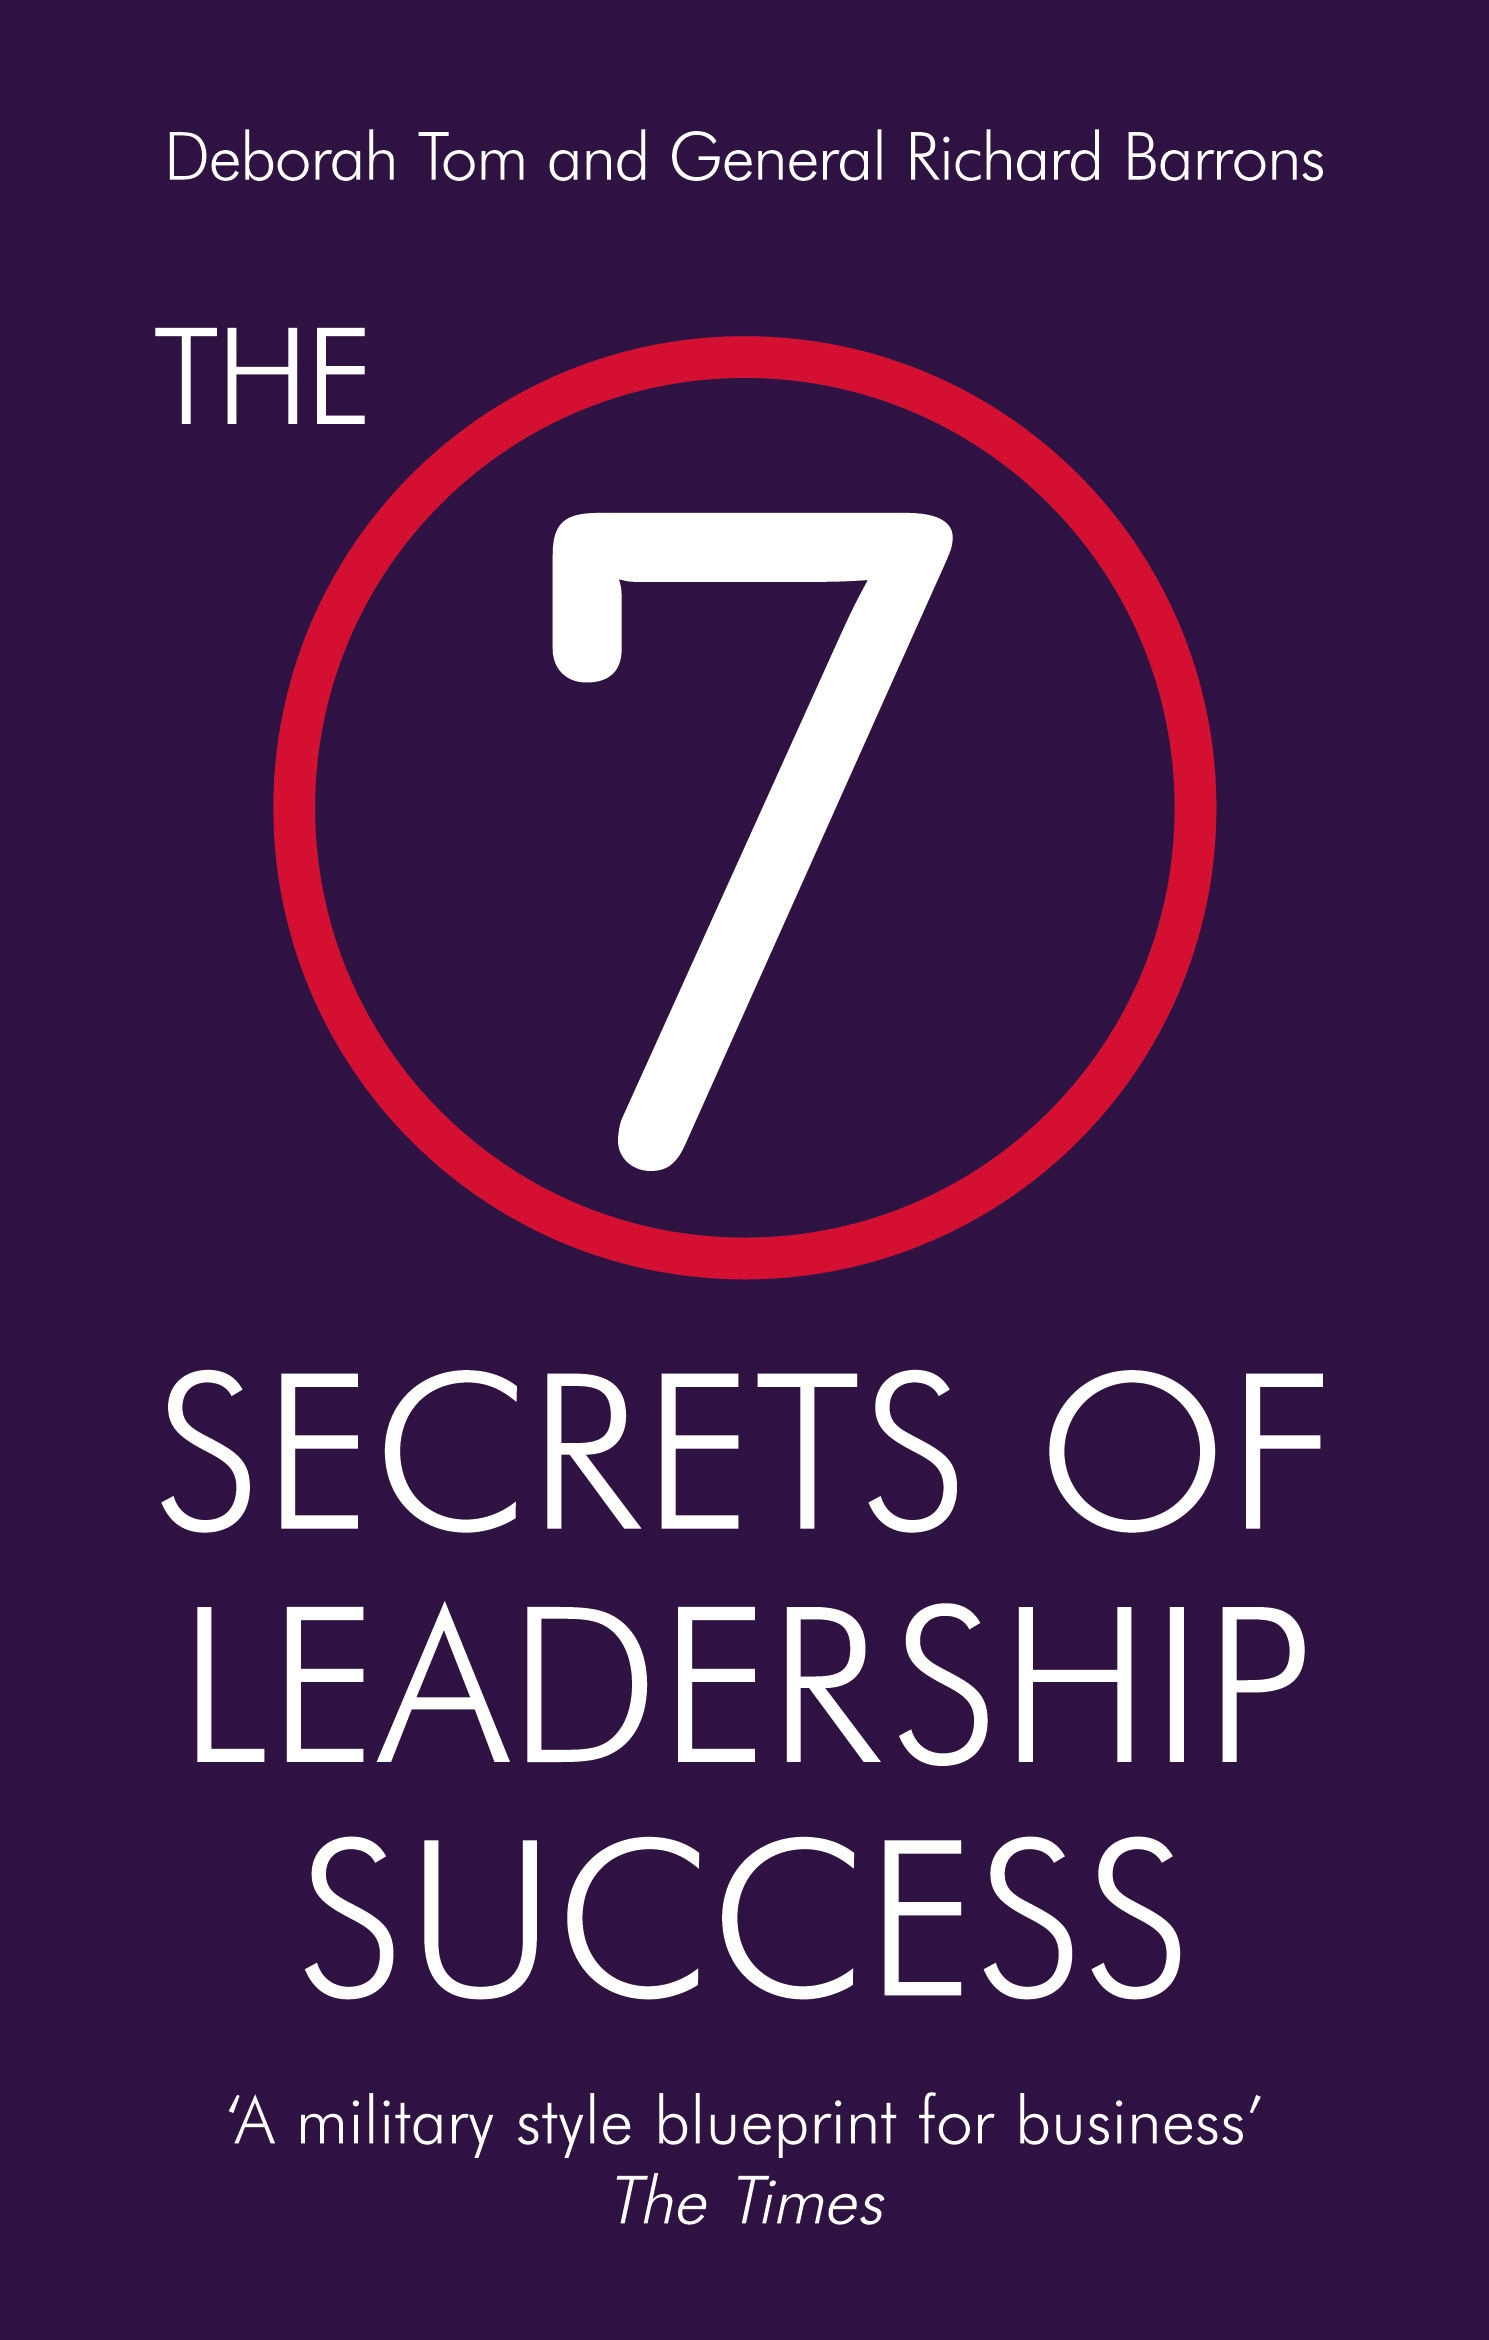 The 7 secrets of leadership success by deborah tom penguin books the 7 secrets of leadership success malvernweather Choice Image